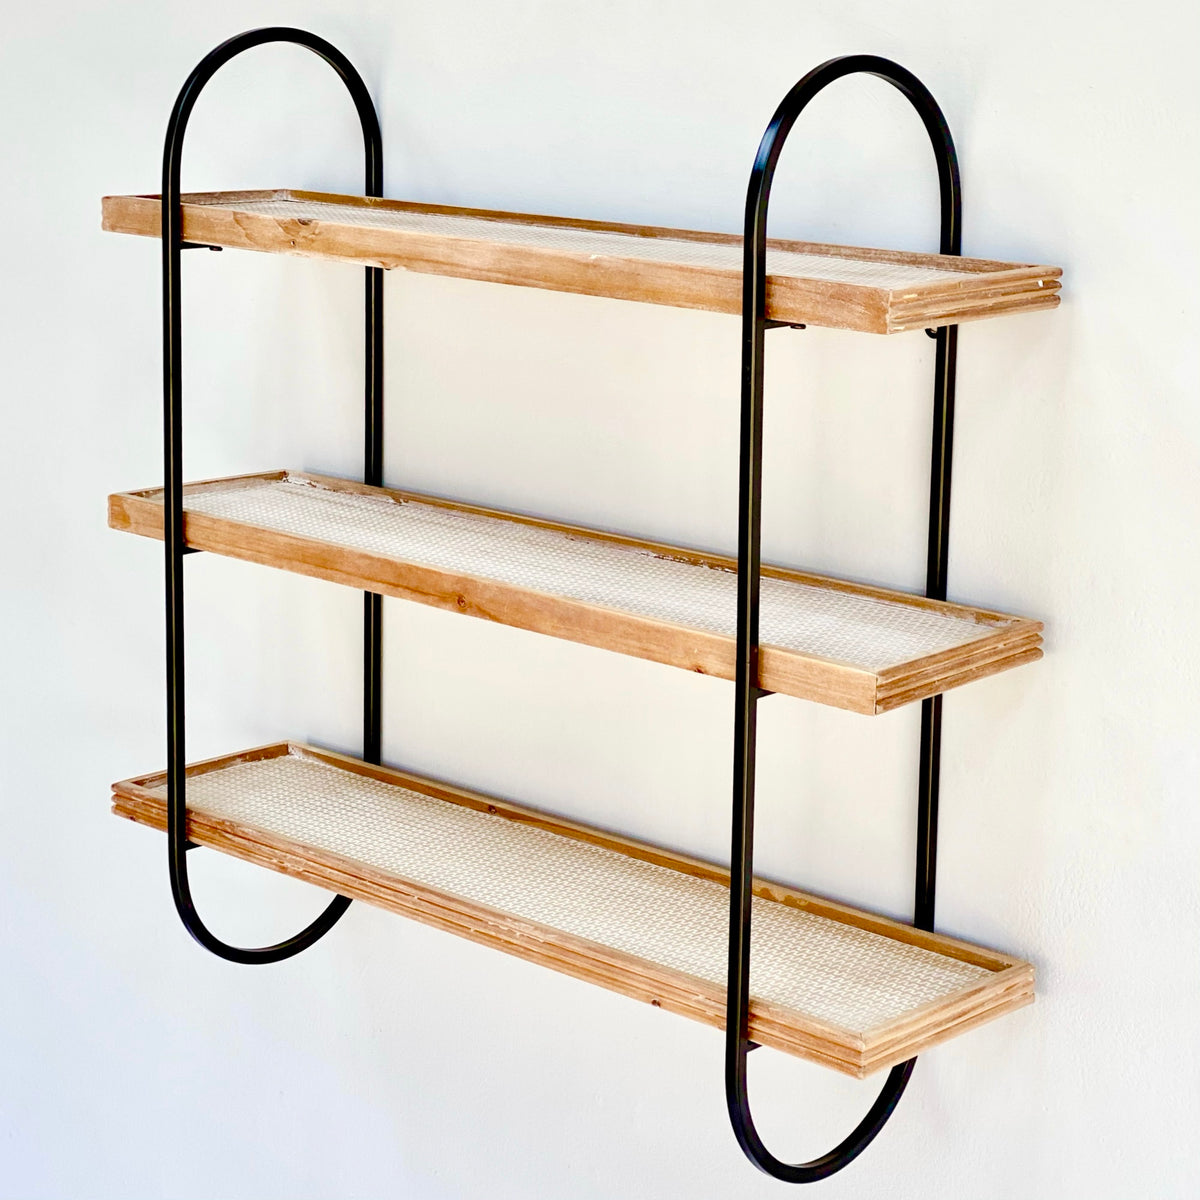 3-Tier Wood and Metal Wall Shelf